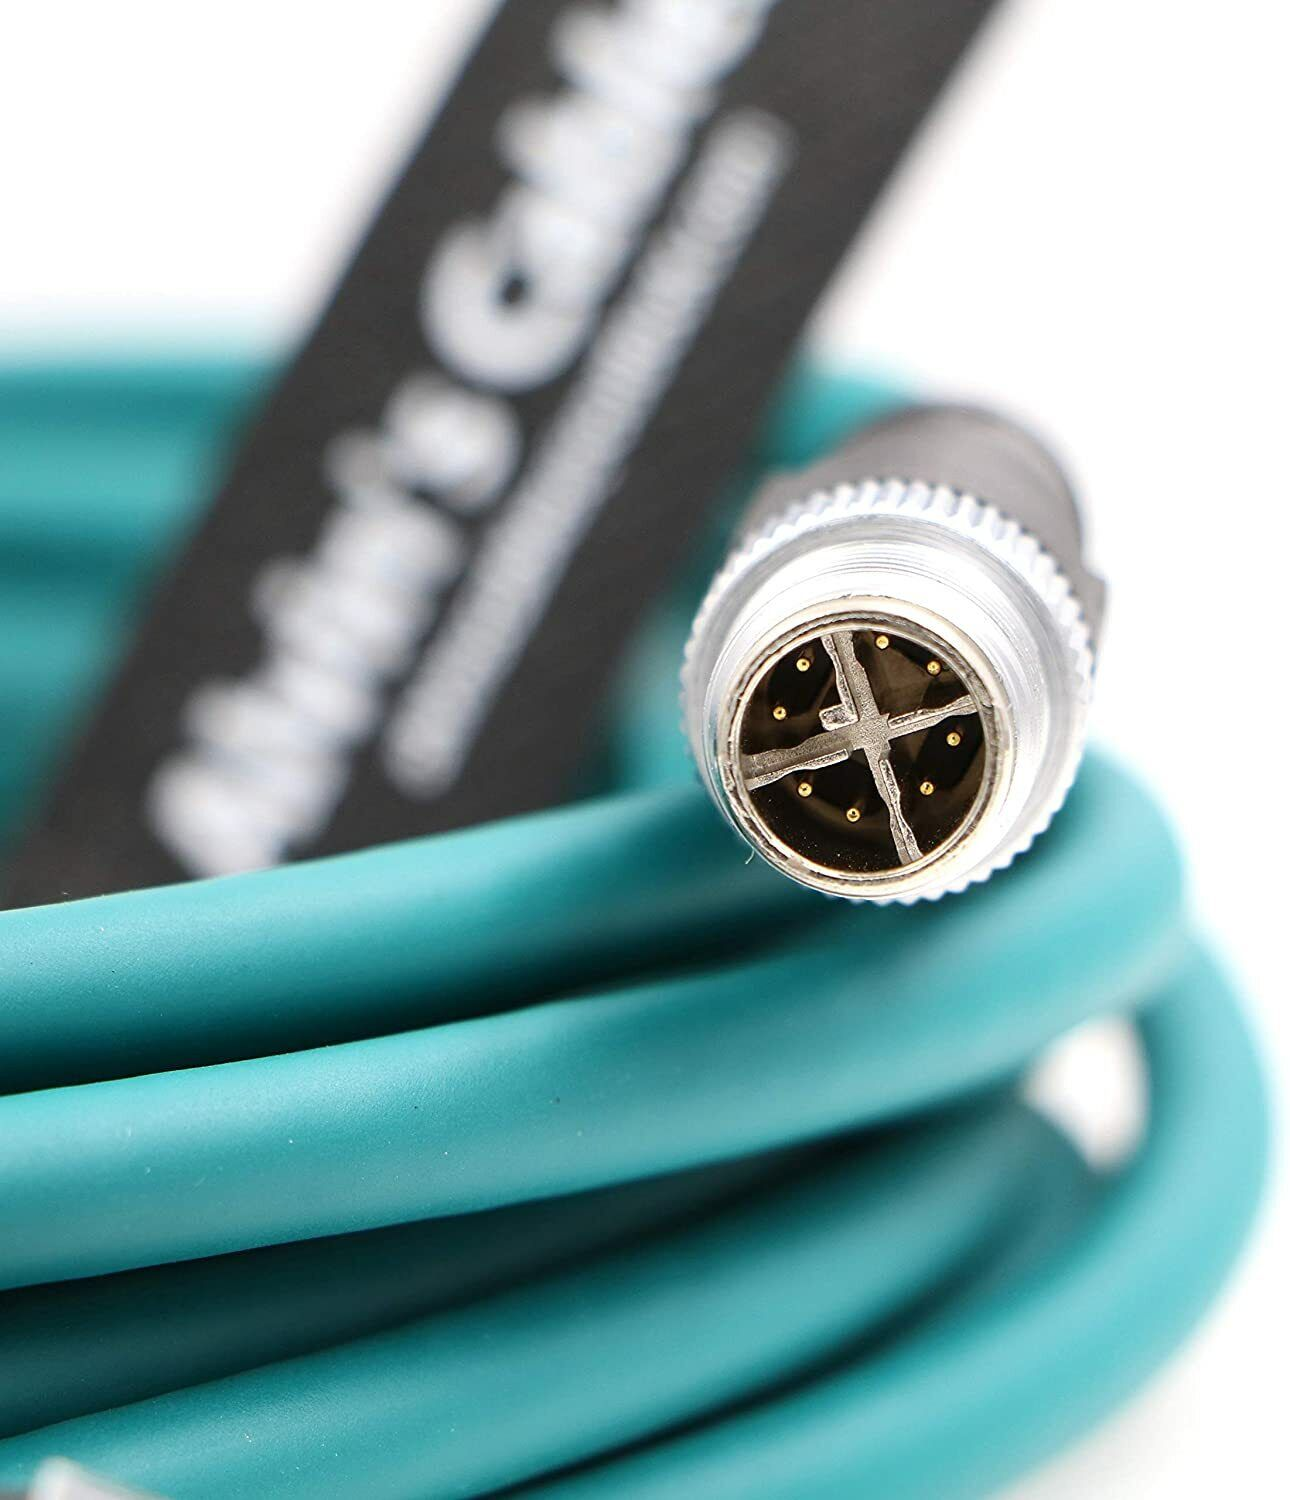 M12 8 Position X Code to RJ45 Industrial Camera Ethernet Cable for Cognex 5M